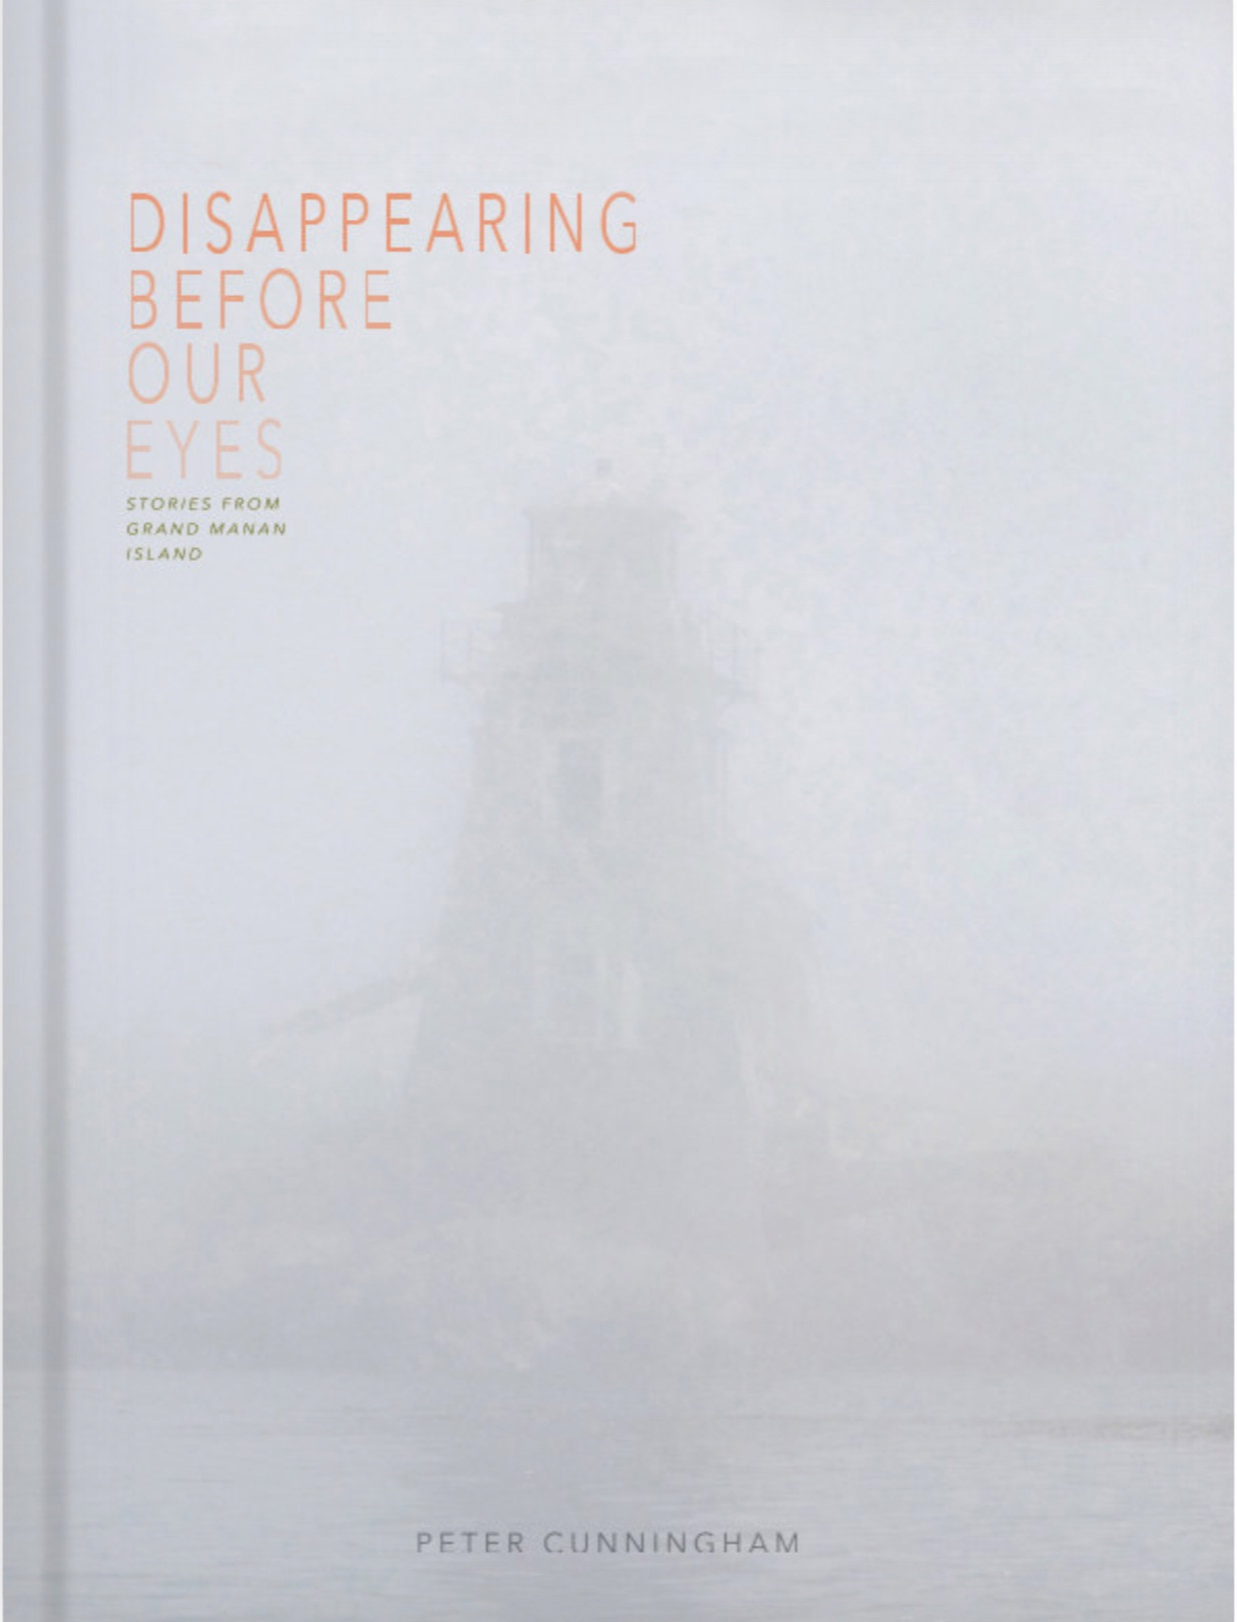 Disappearing+cover+screen+copy.jpg